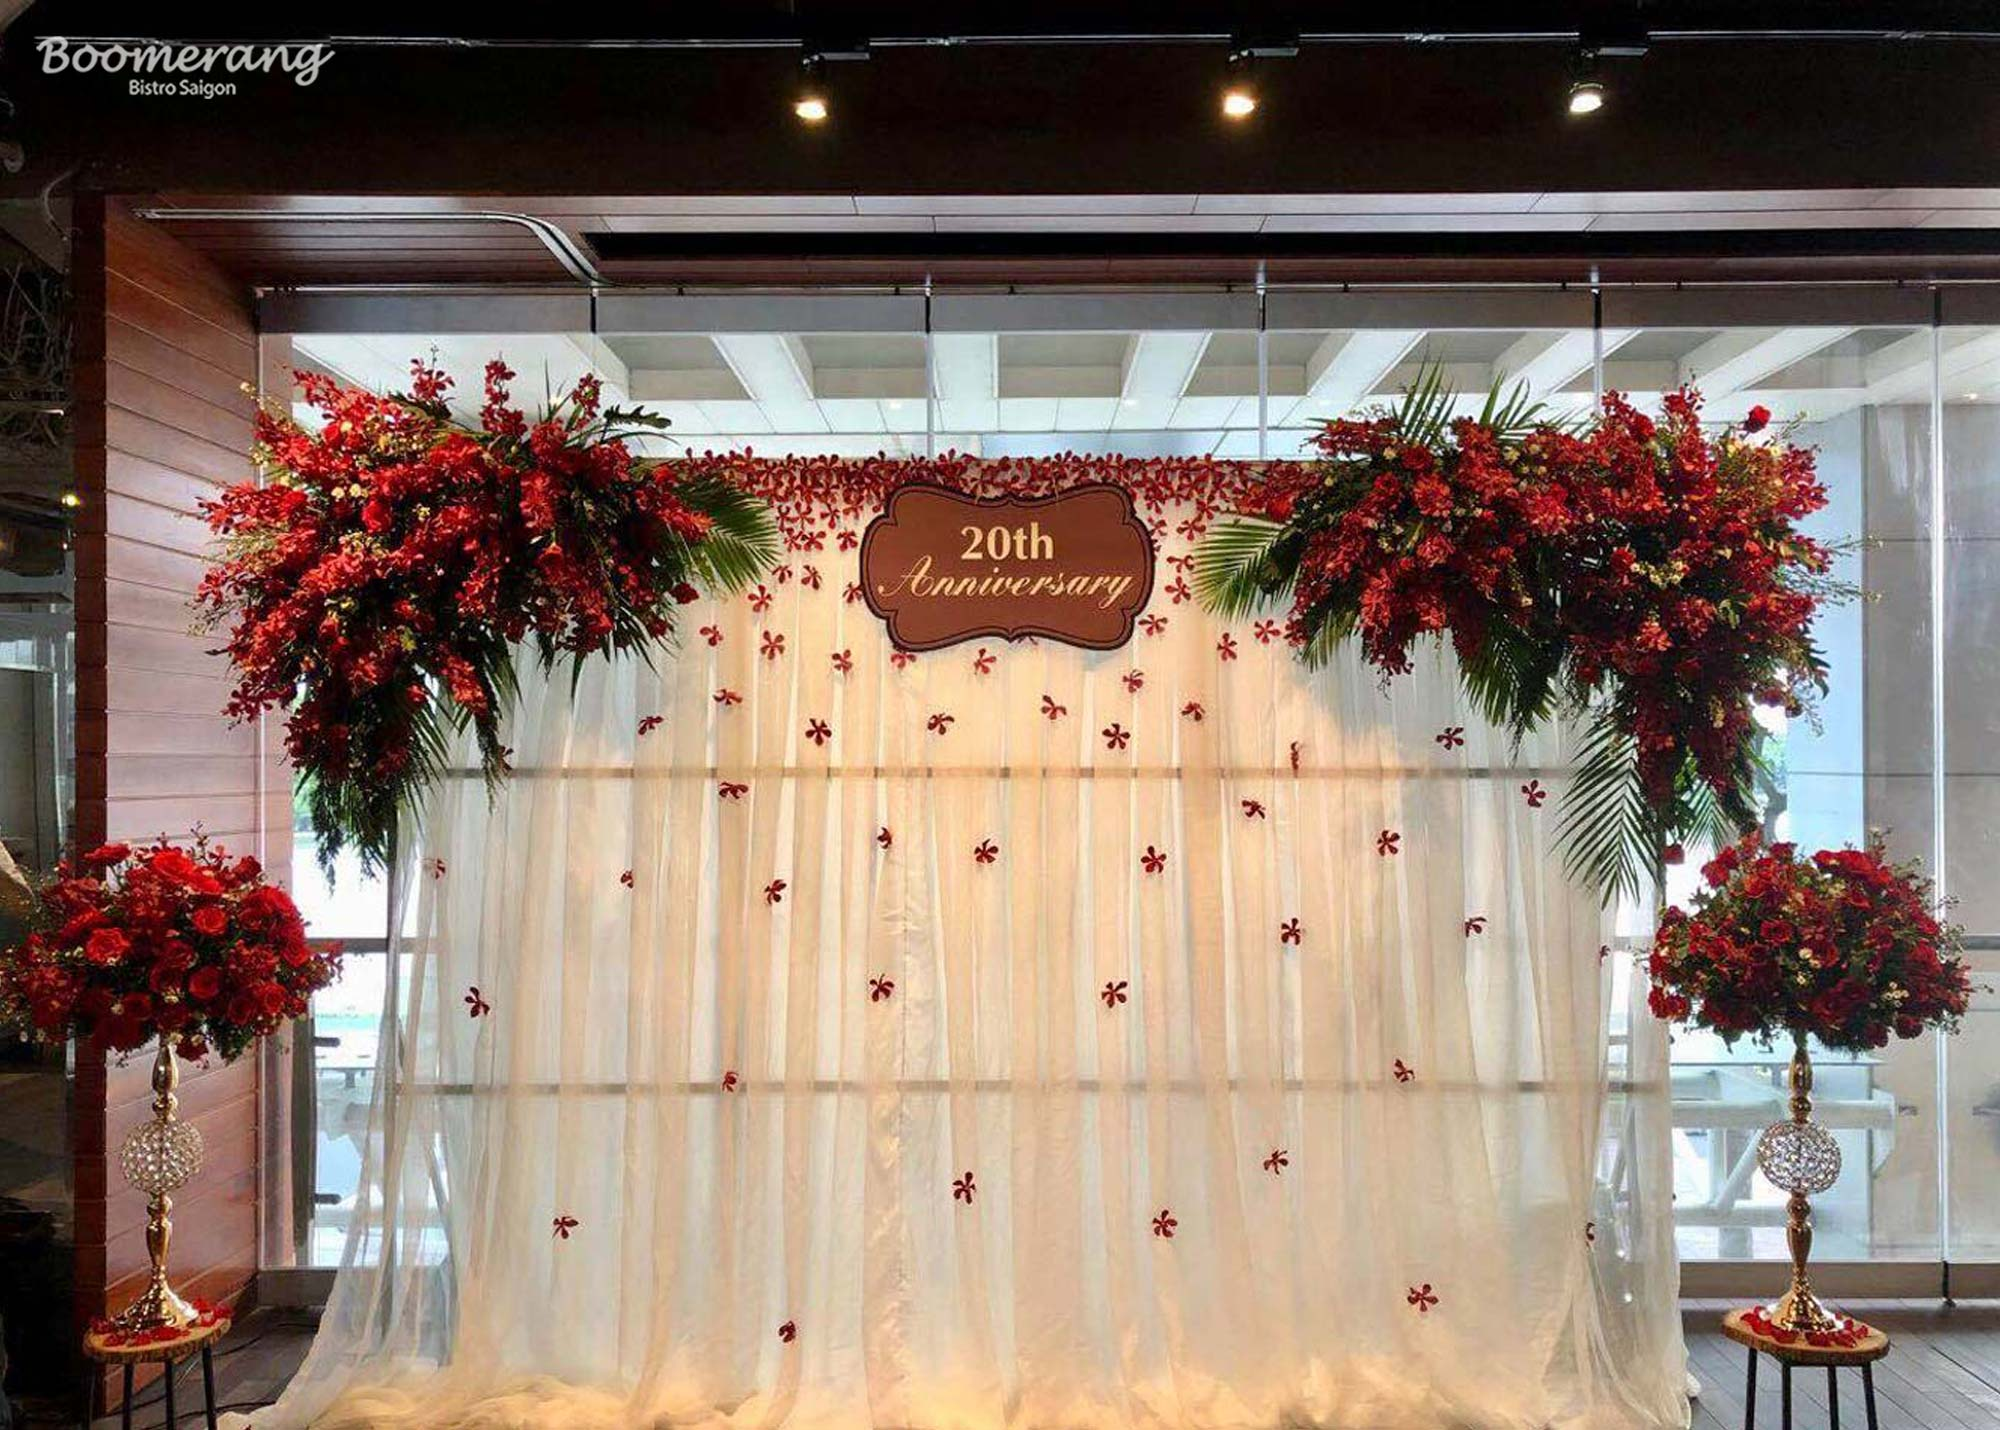 Flower gate decoration according to the party's theme